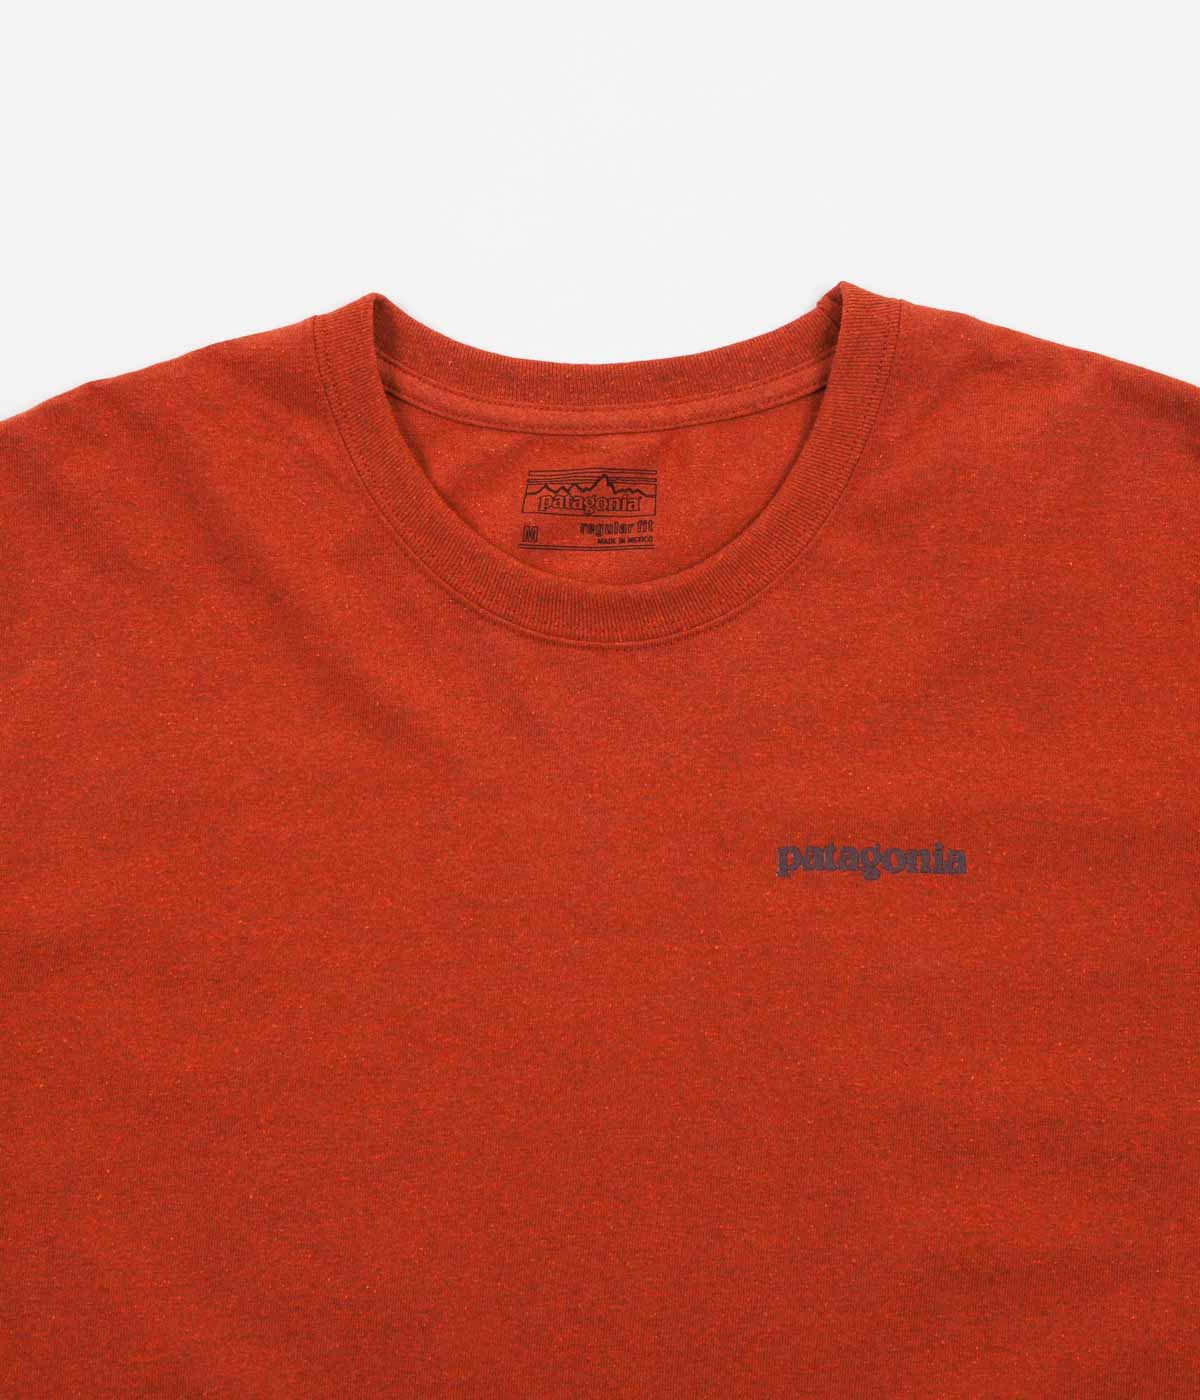 Patagonia Text Logo Long Sleeve T-Shirt - Roots Red